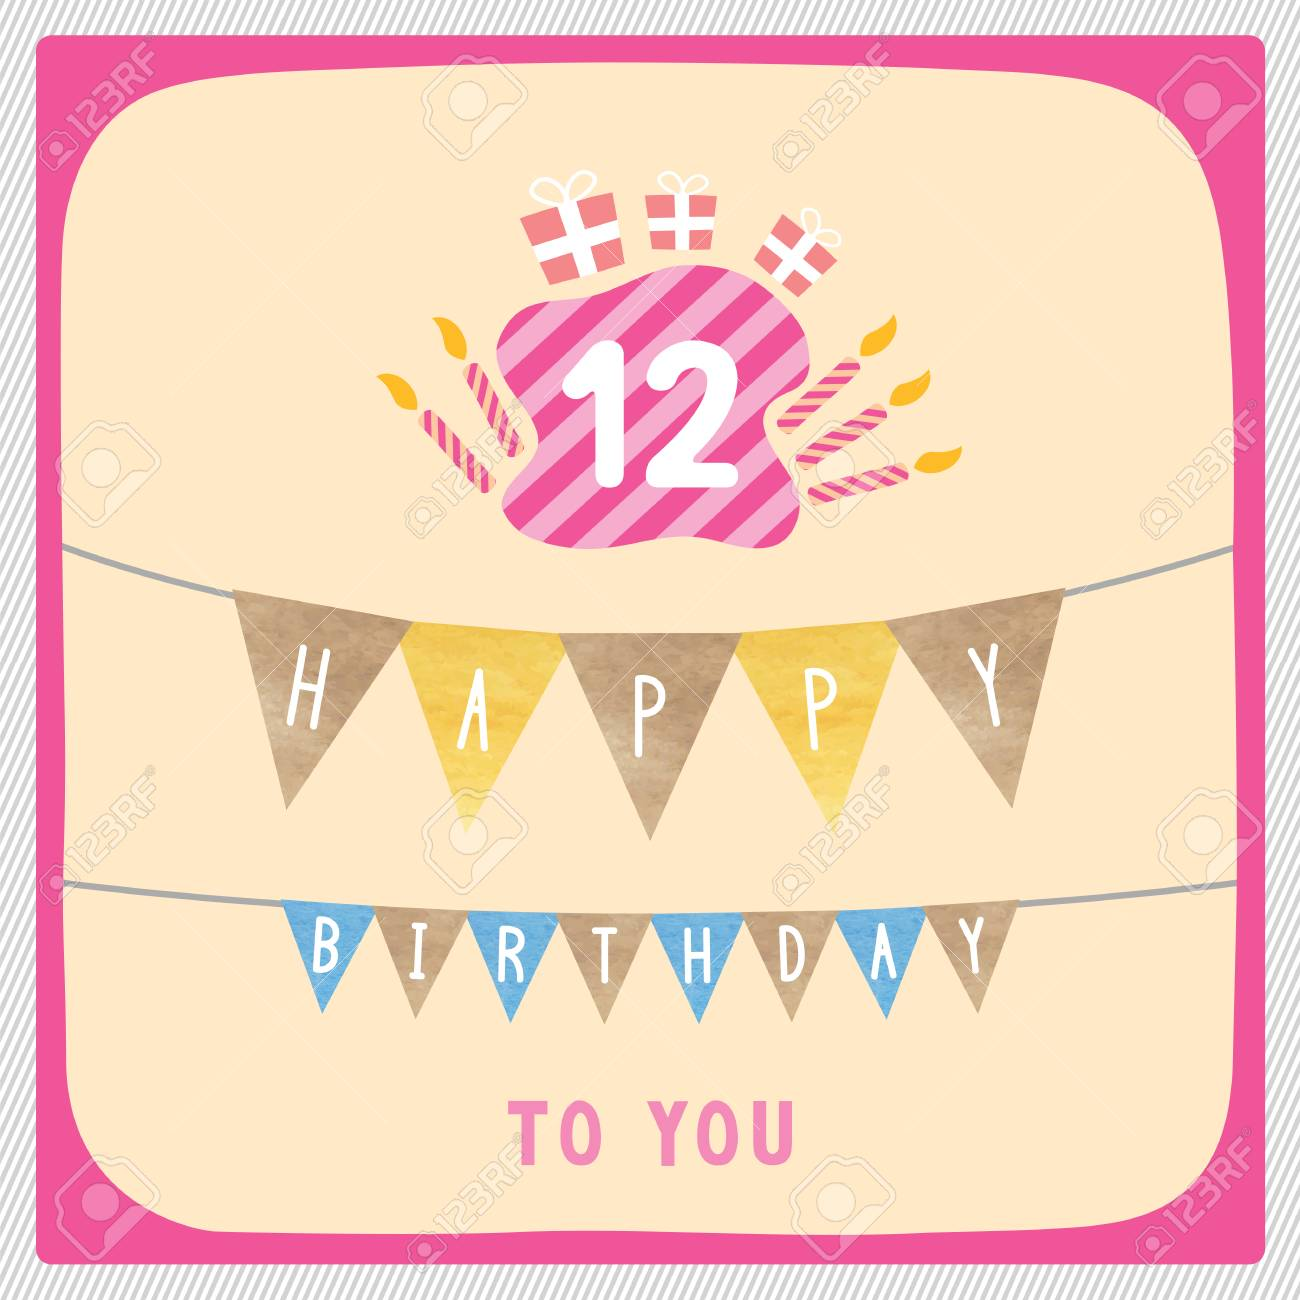 Happy 12th Birthday Anniversary Card With Gift Boxes And Candles Stock Photo